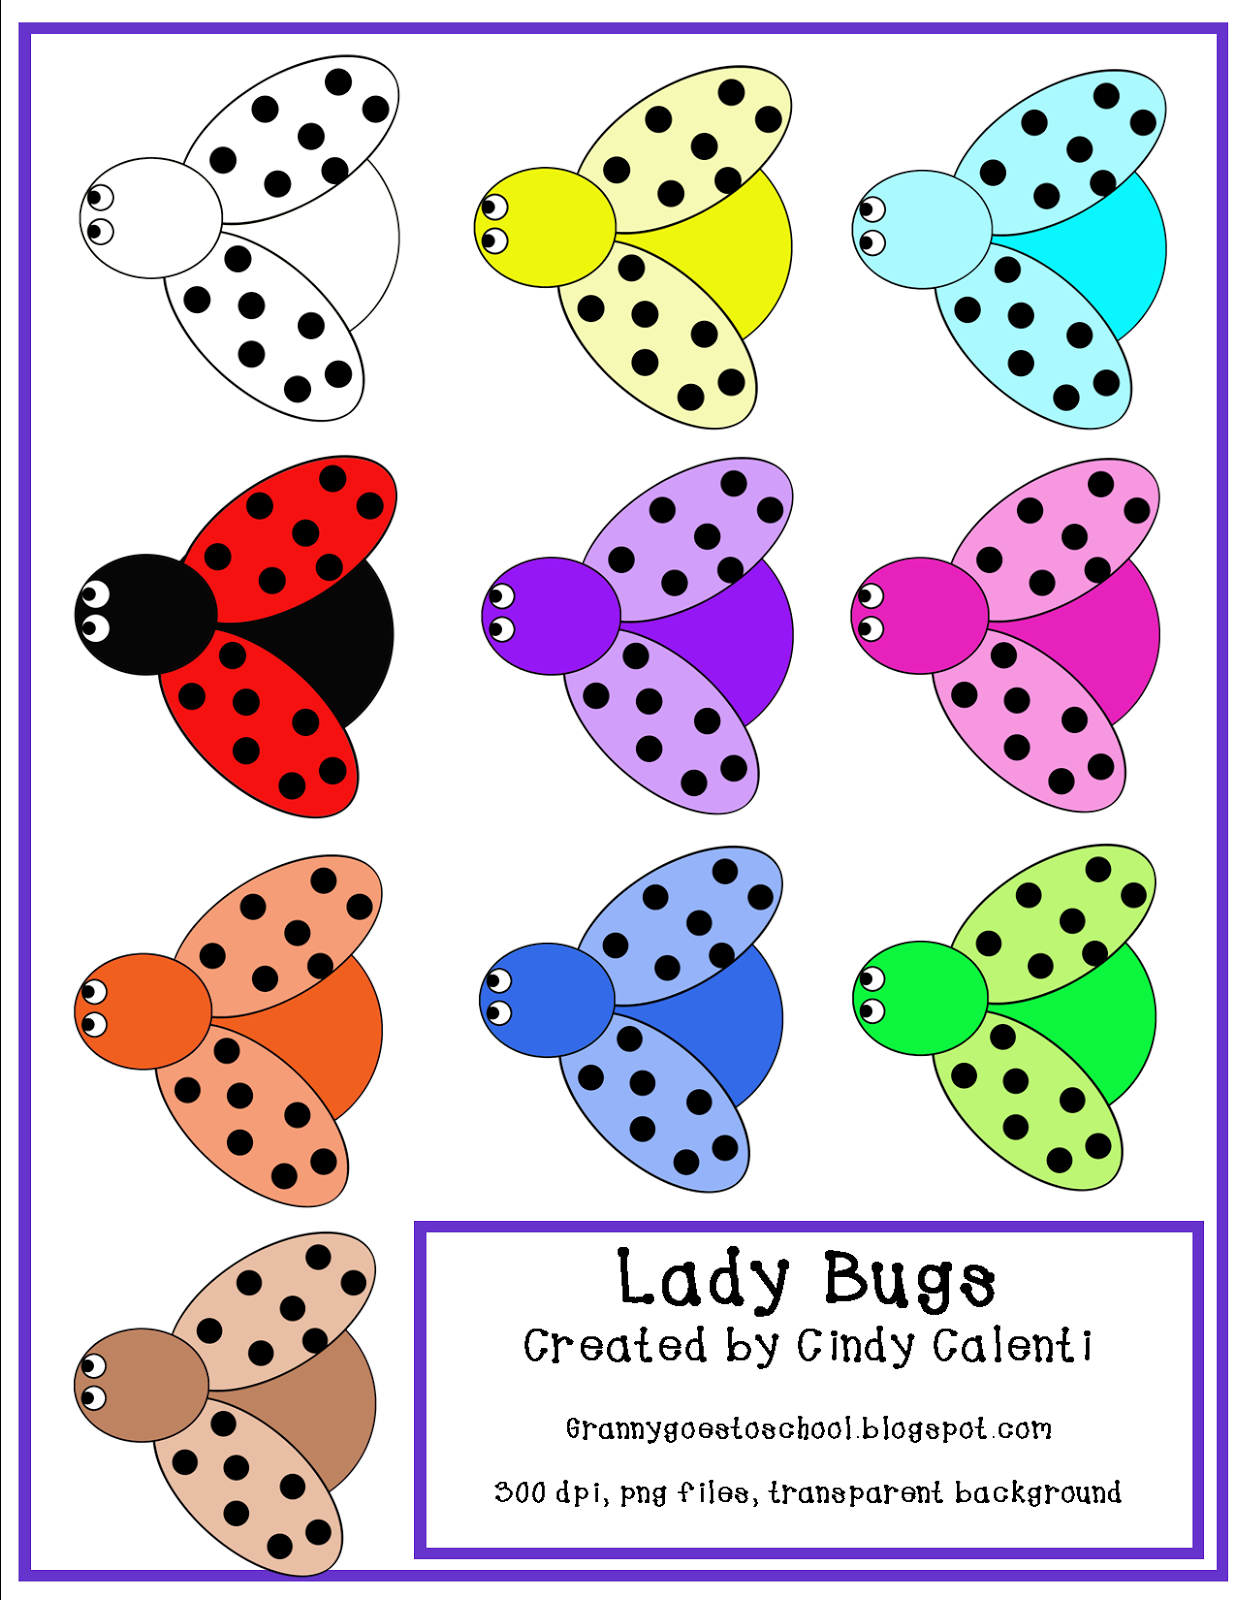 http://3.bp.blogspot.com/-SYI8Kq9kb9I/U92Q_bV_o9I/AAAAAAAAFQo/4vks4xaz4Aw/s1600/Lady.bug.cover.png